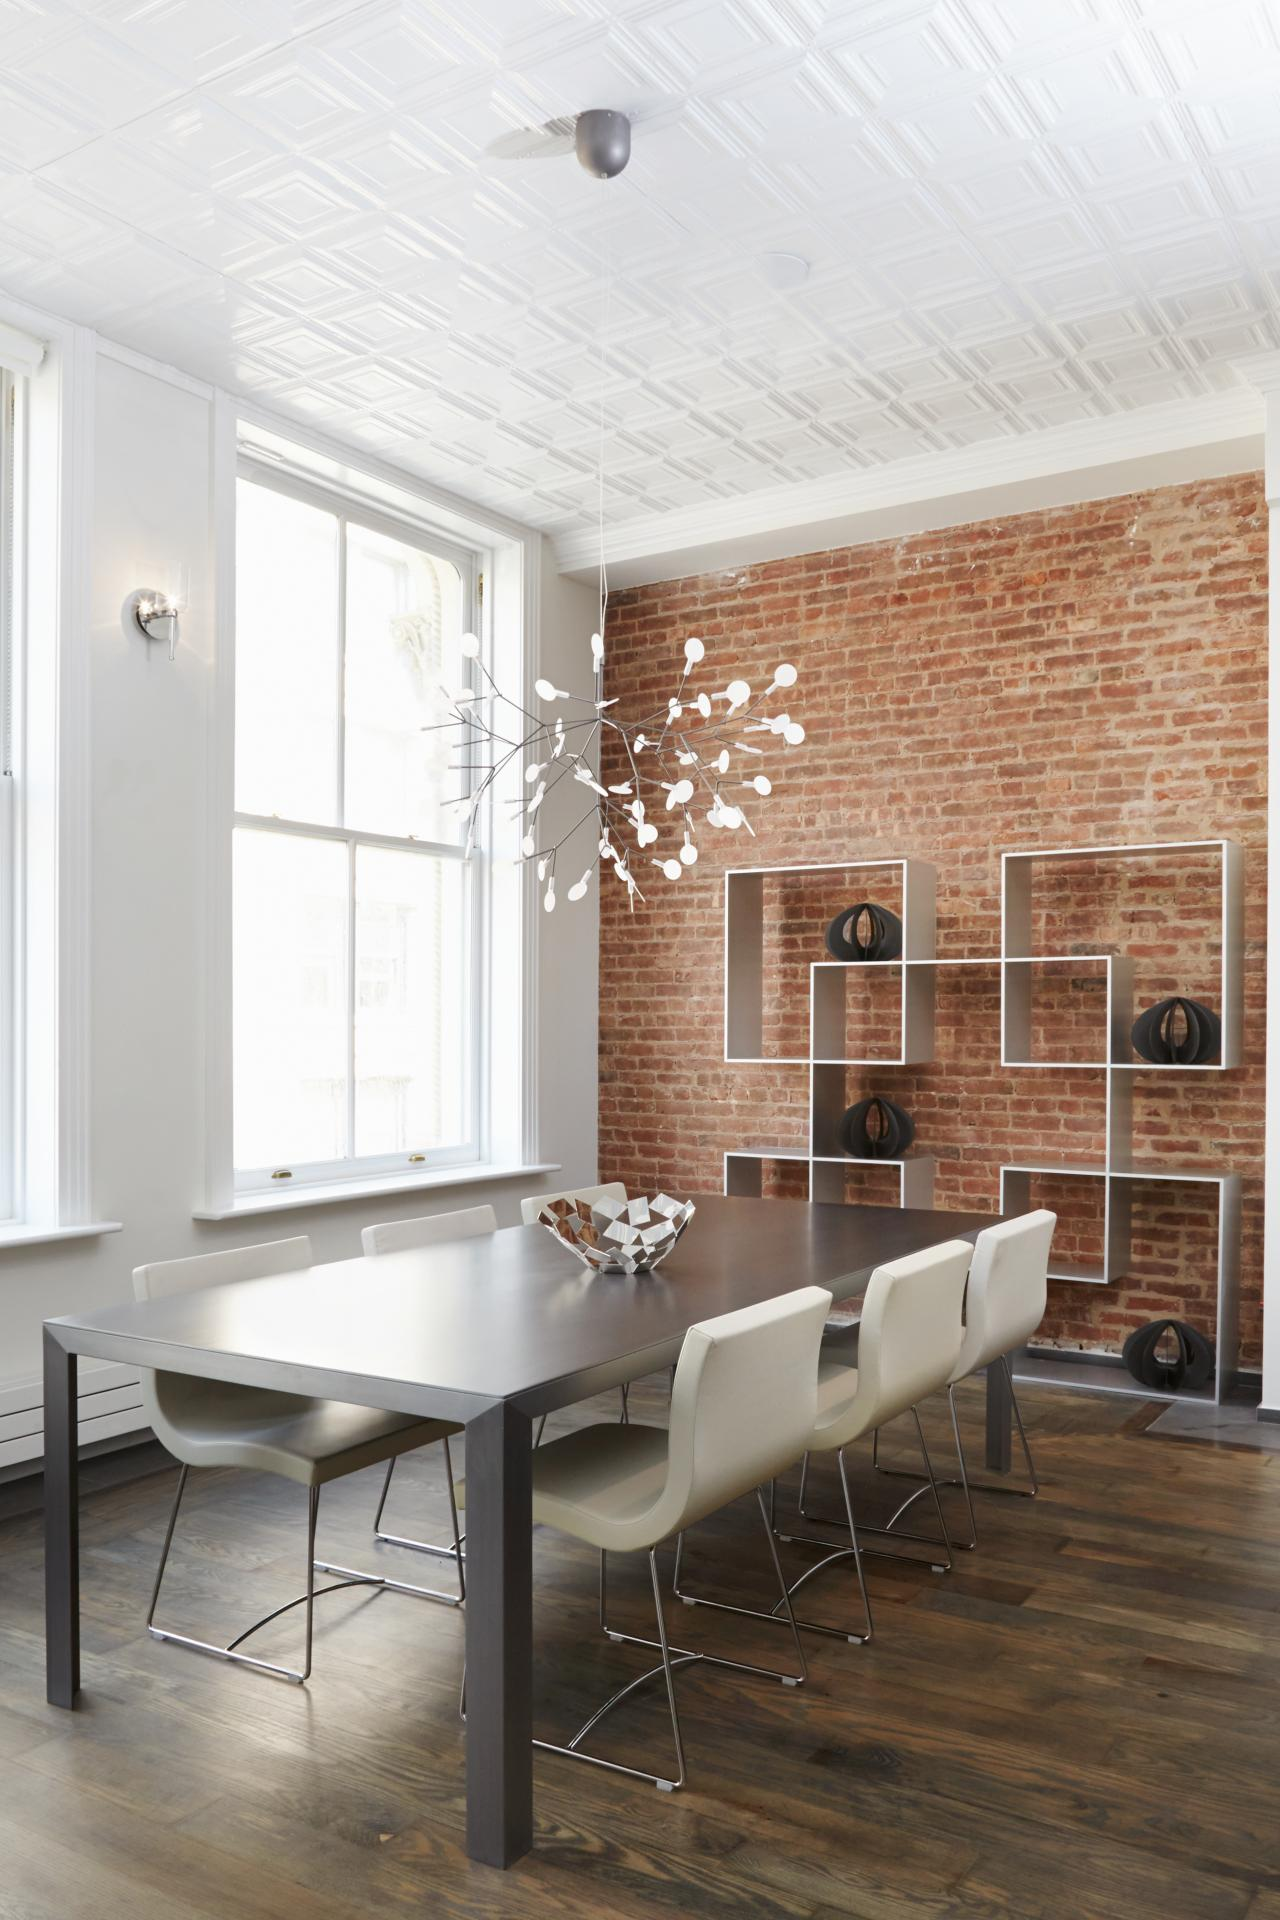 modern dining room wall decor. 15  Shelves Modern White Dining Room With Exposed Brick Wall Ways to Dress Up Your Walls HGTV s Decorating